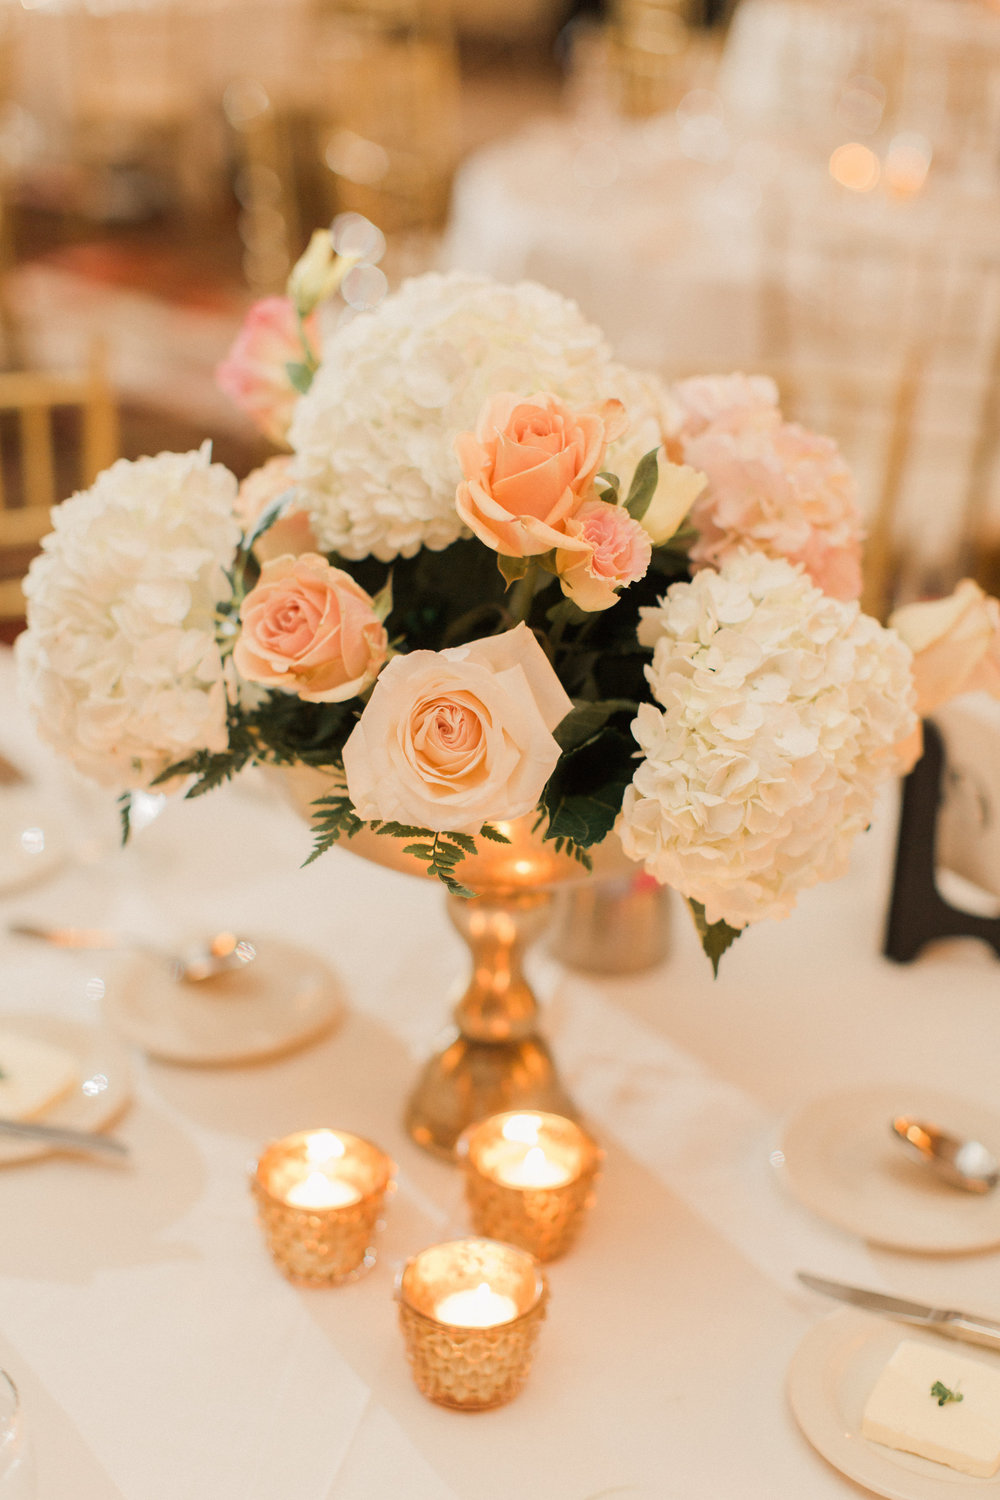 centerpieces-white-flowers-peach-roses-iowa-wedding-iowa-venue-blush-white-pink-bridesmaids-dresses-downtown-desmoines-planned-mostly-becky-weddings-black-tux-black-tie-event